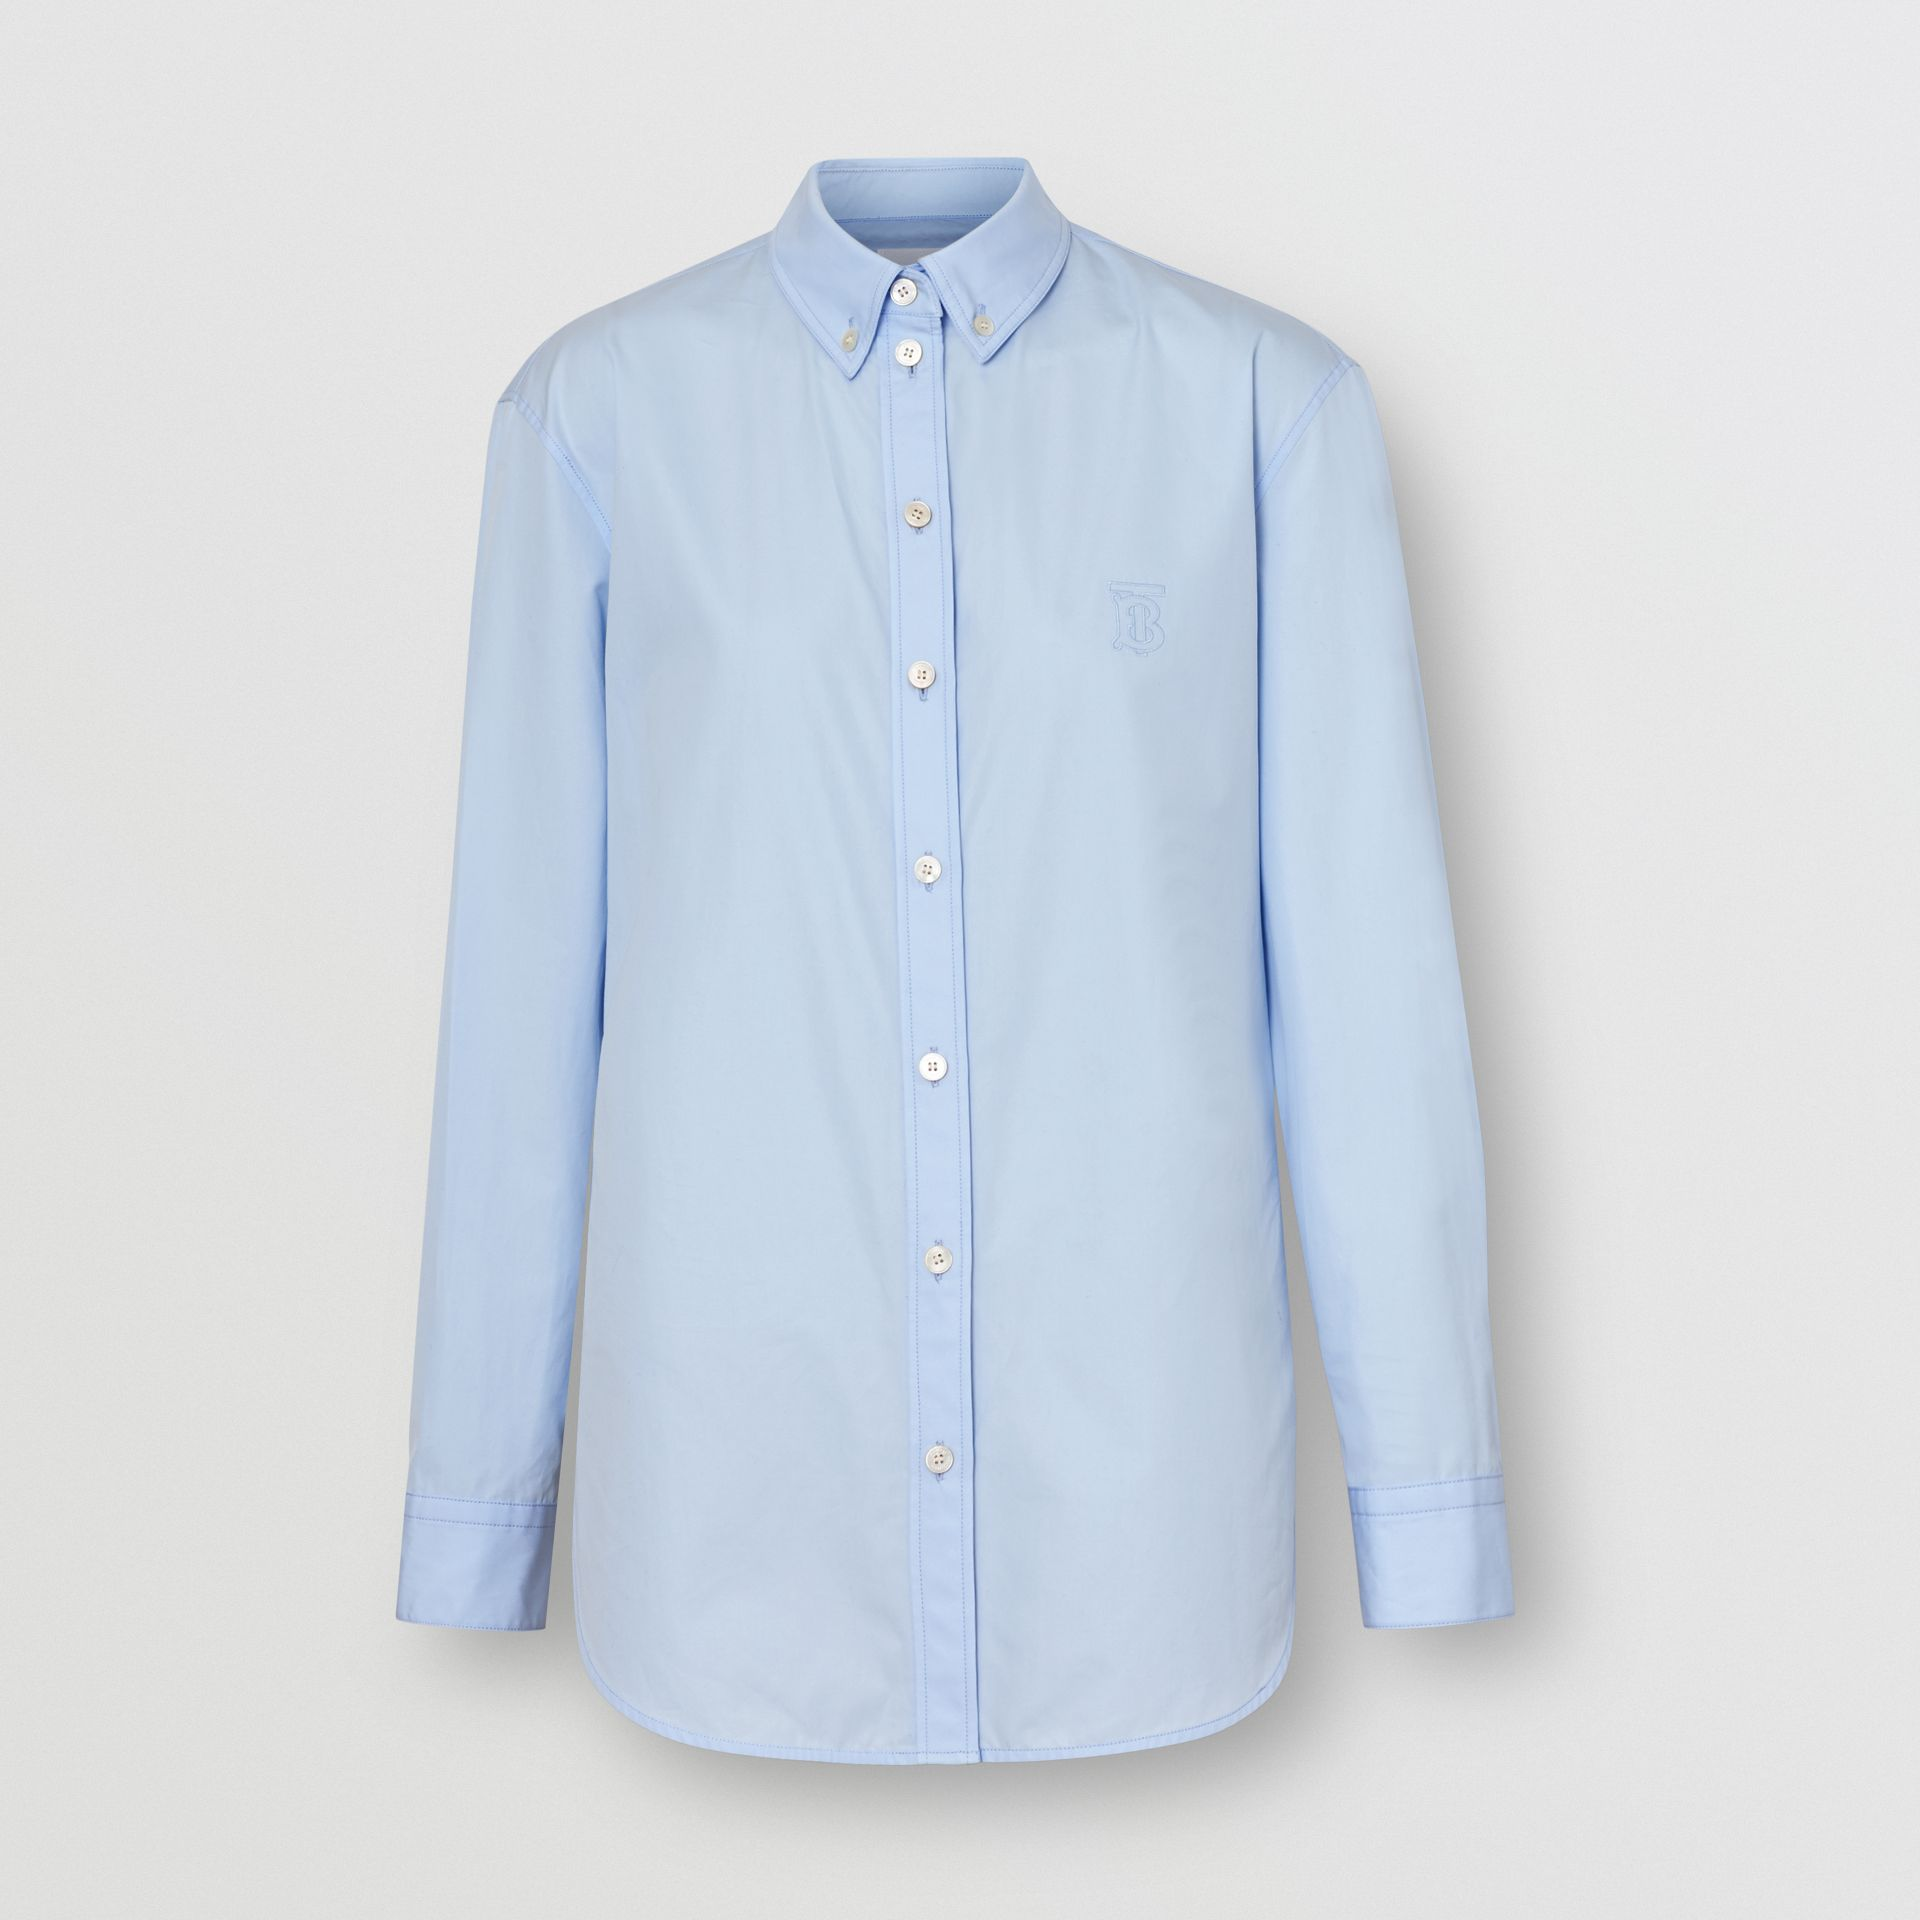 Button-down Collar Monogram Motif Cotton Shirt in Pale Blue - Women | Burberry - gallery image 3